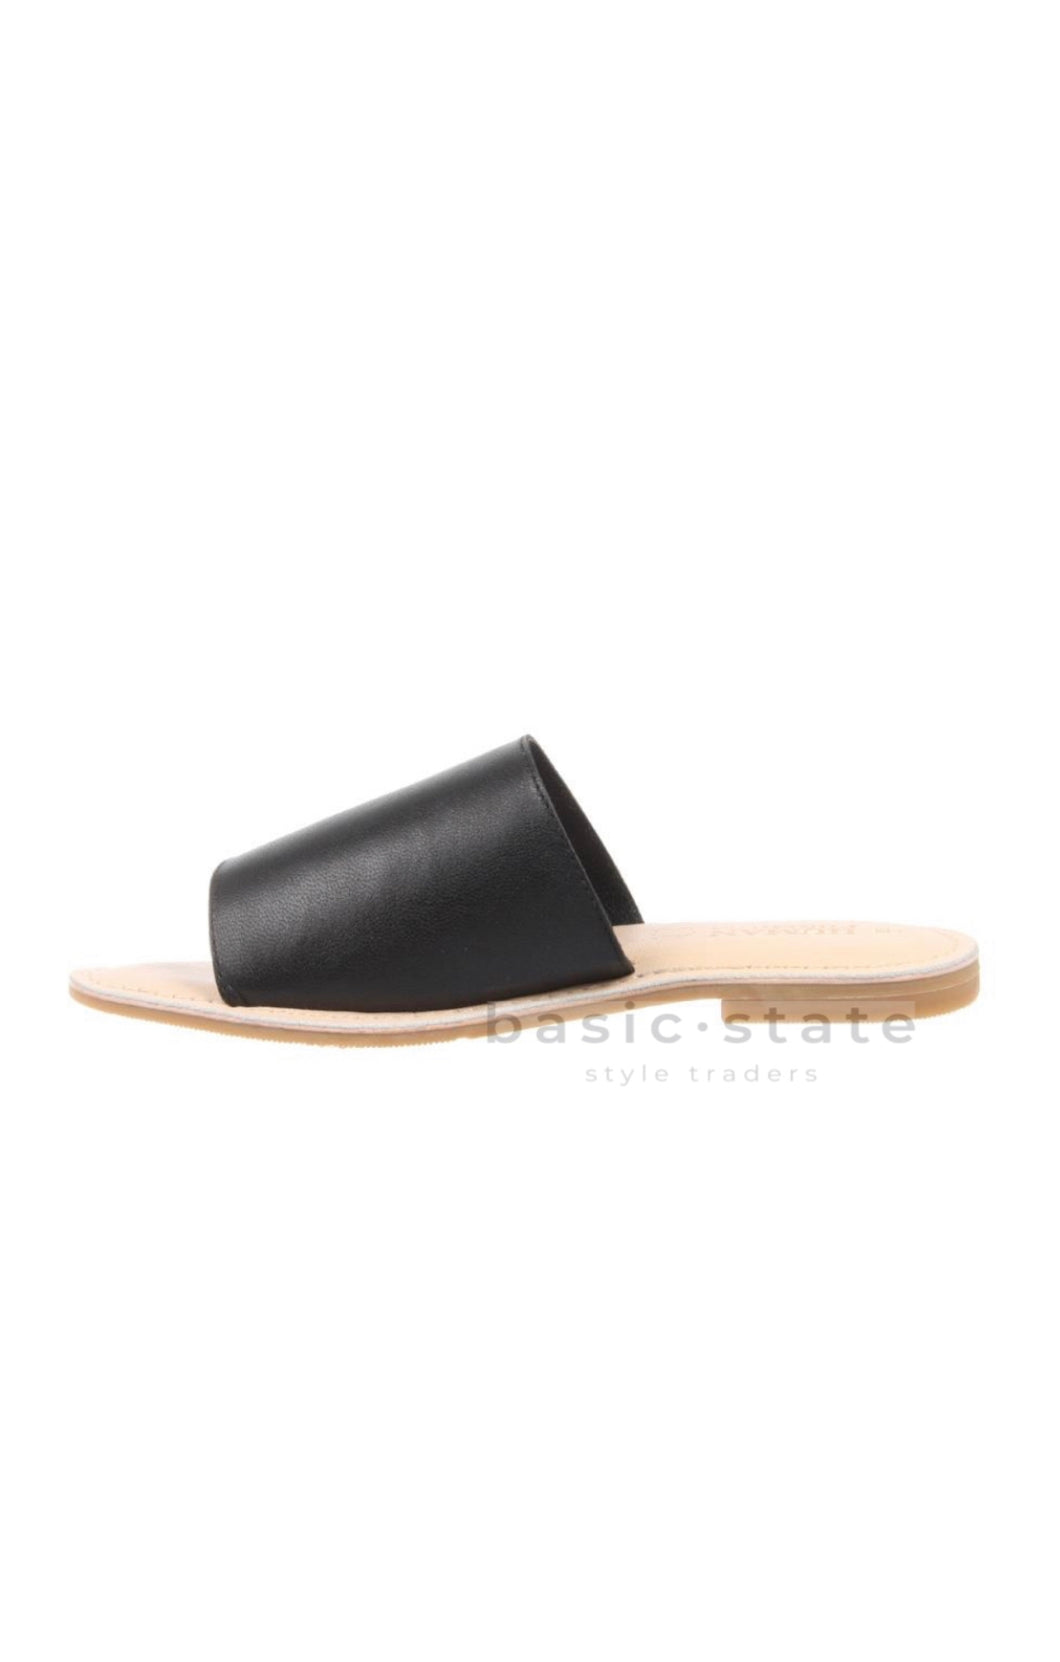 Trinity Slides Black Leather Shoes - Ladies Super soft leather Slides Leather Sandals Leather Slides Black leather shoes - Basic State